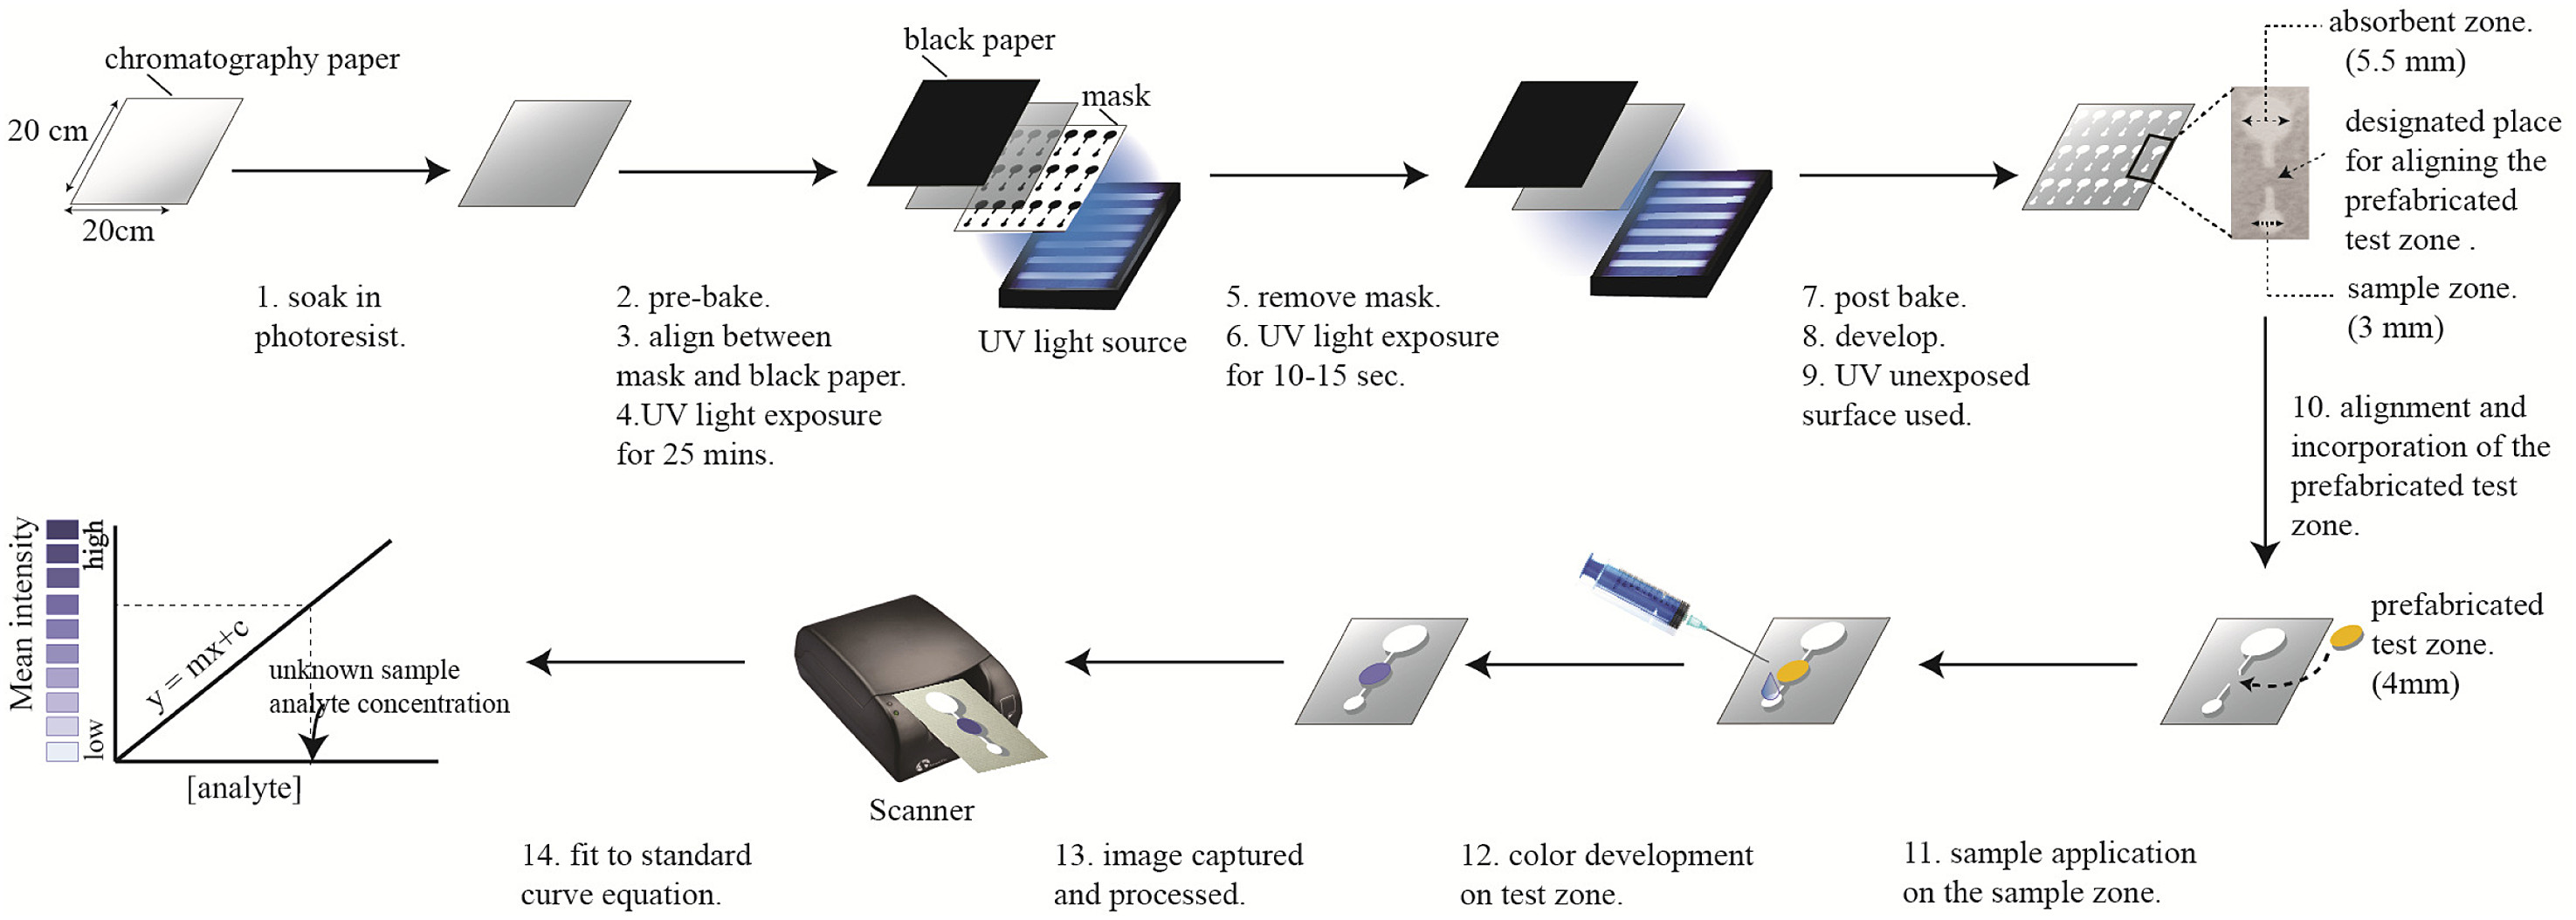 A low cost design and fabrication method for developing a leak proof